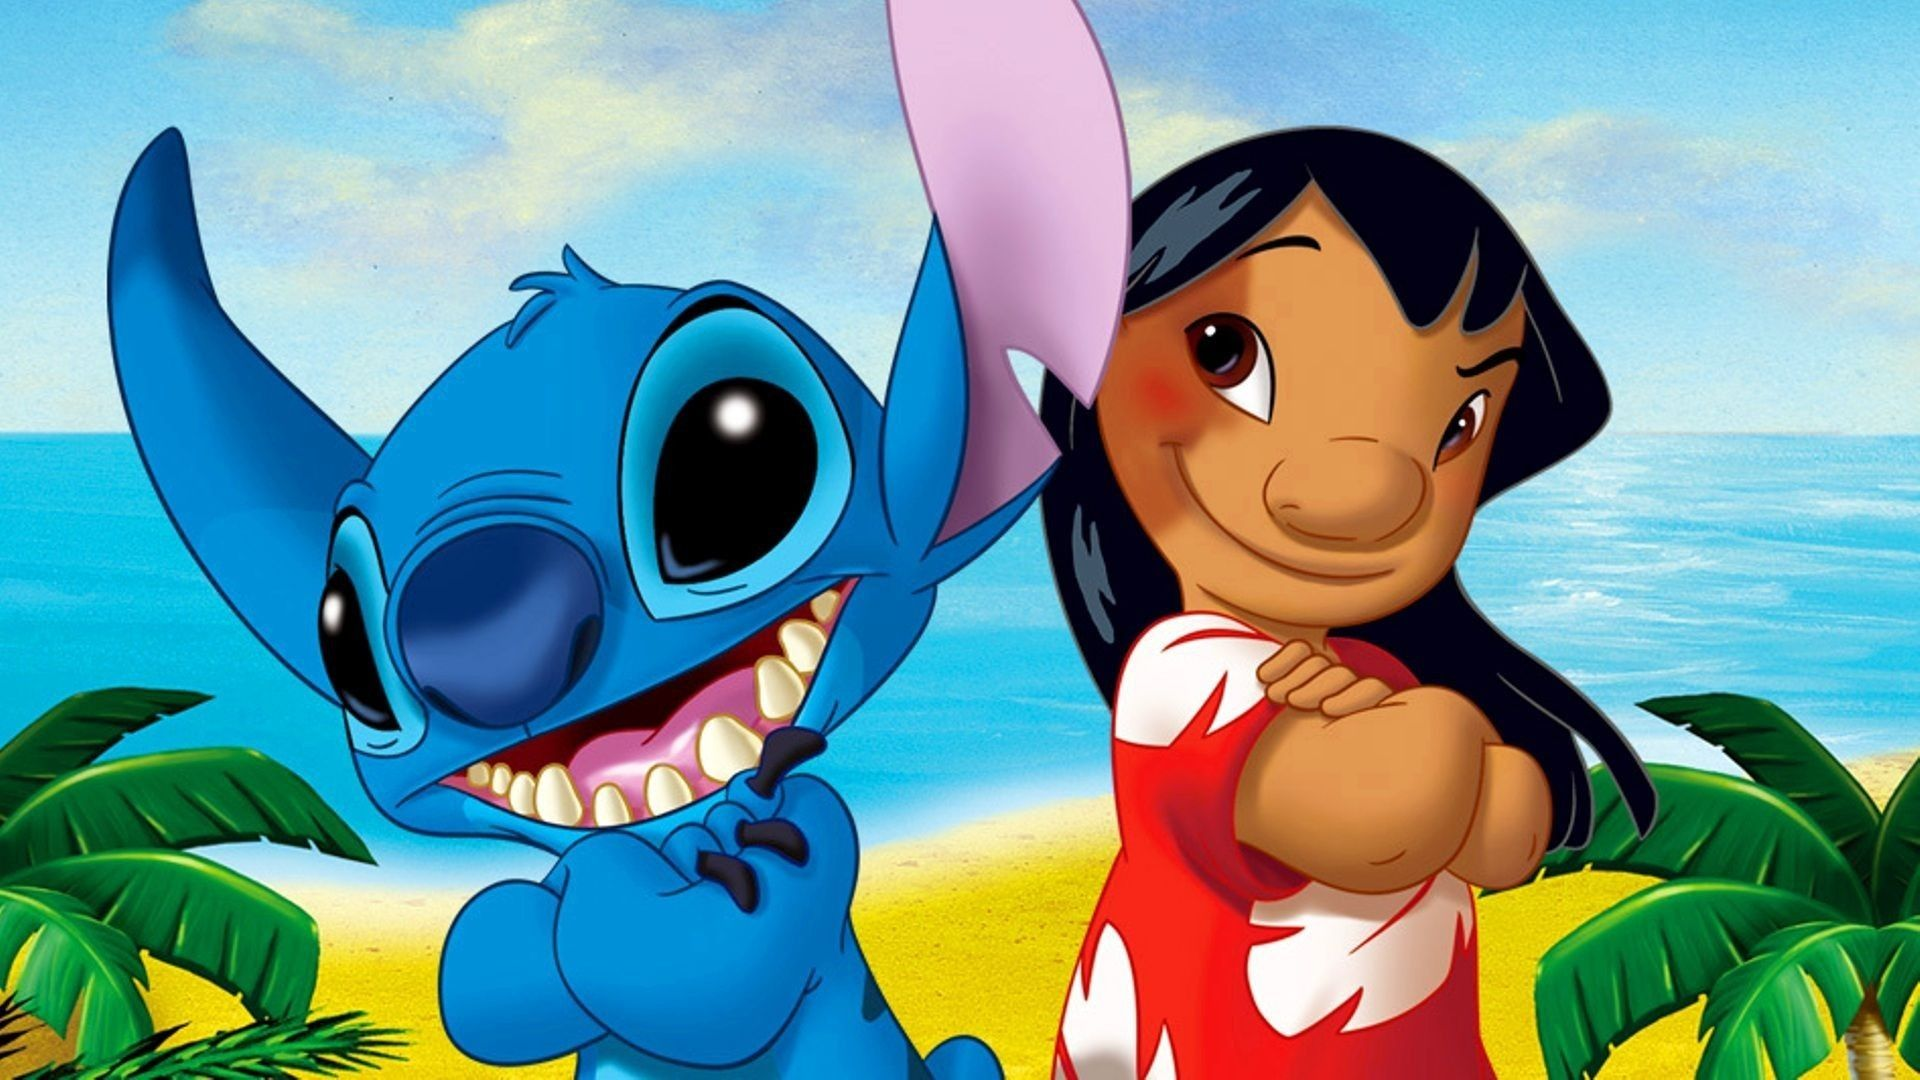 Lilo And Stitch Wallpapers Top Free Lilo And Stitch Backgrounds Wallpaperaccess